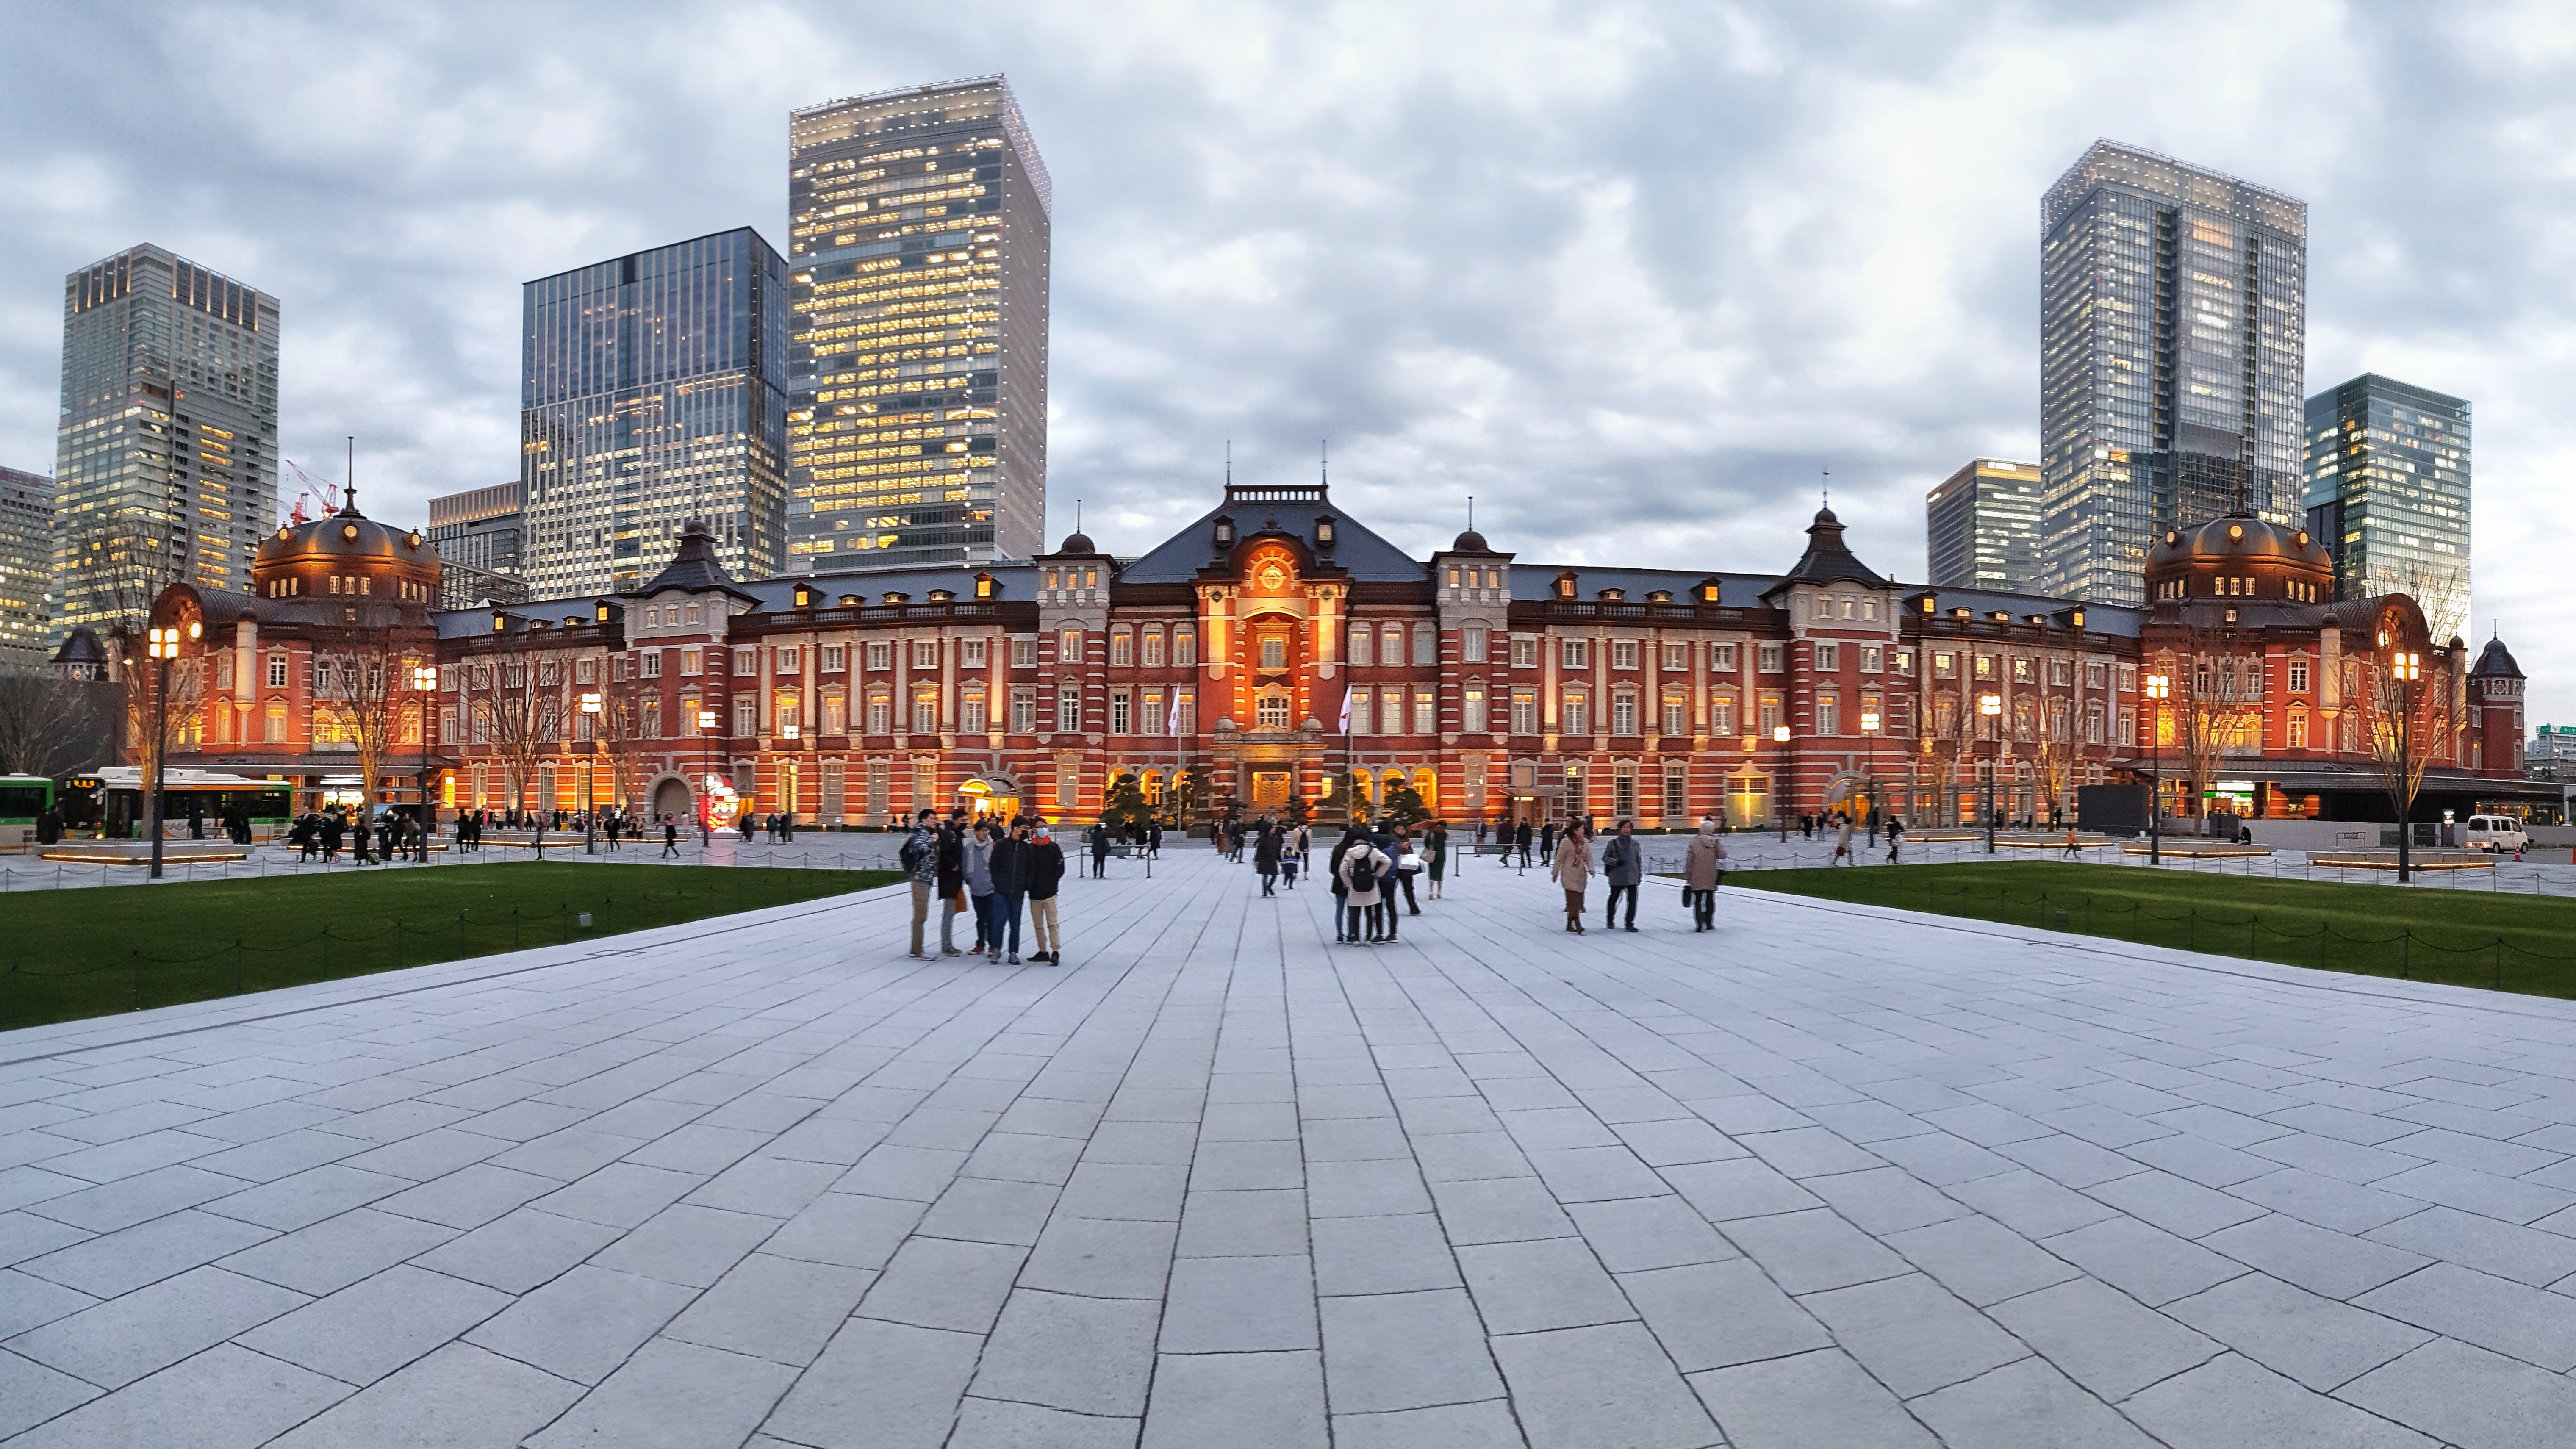 Tokyo Station - Where to stay in Tokyo